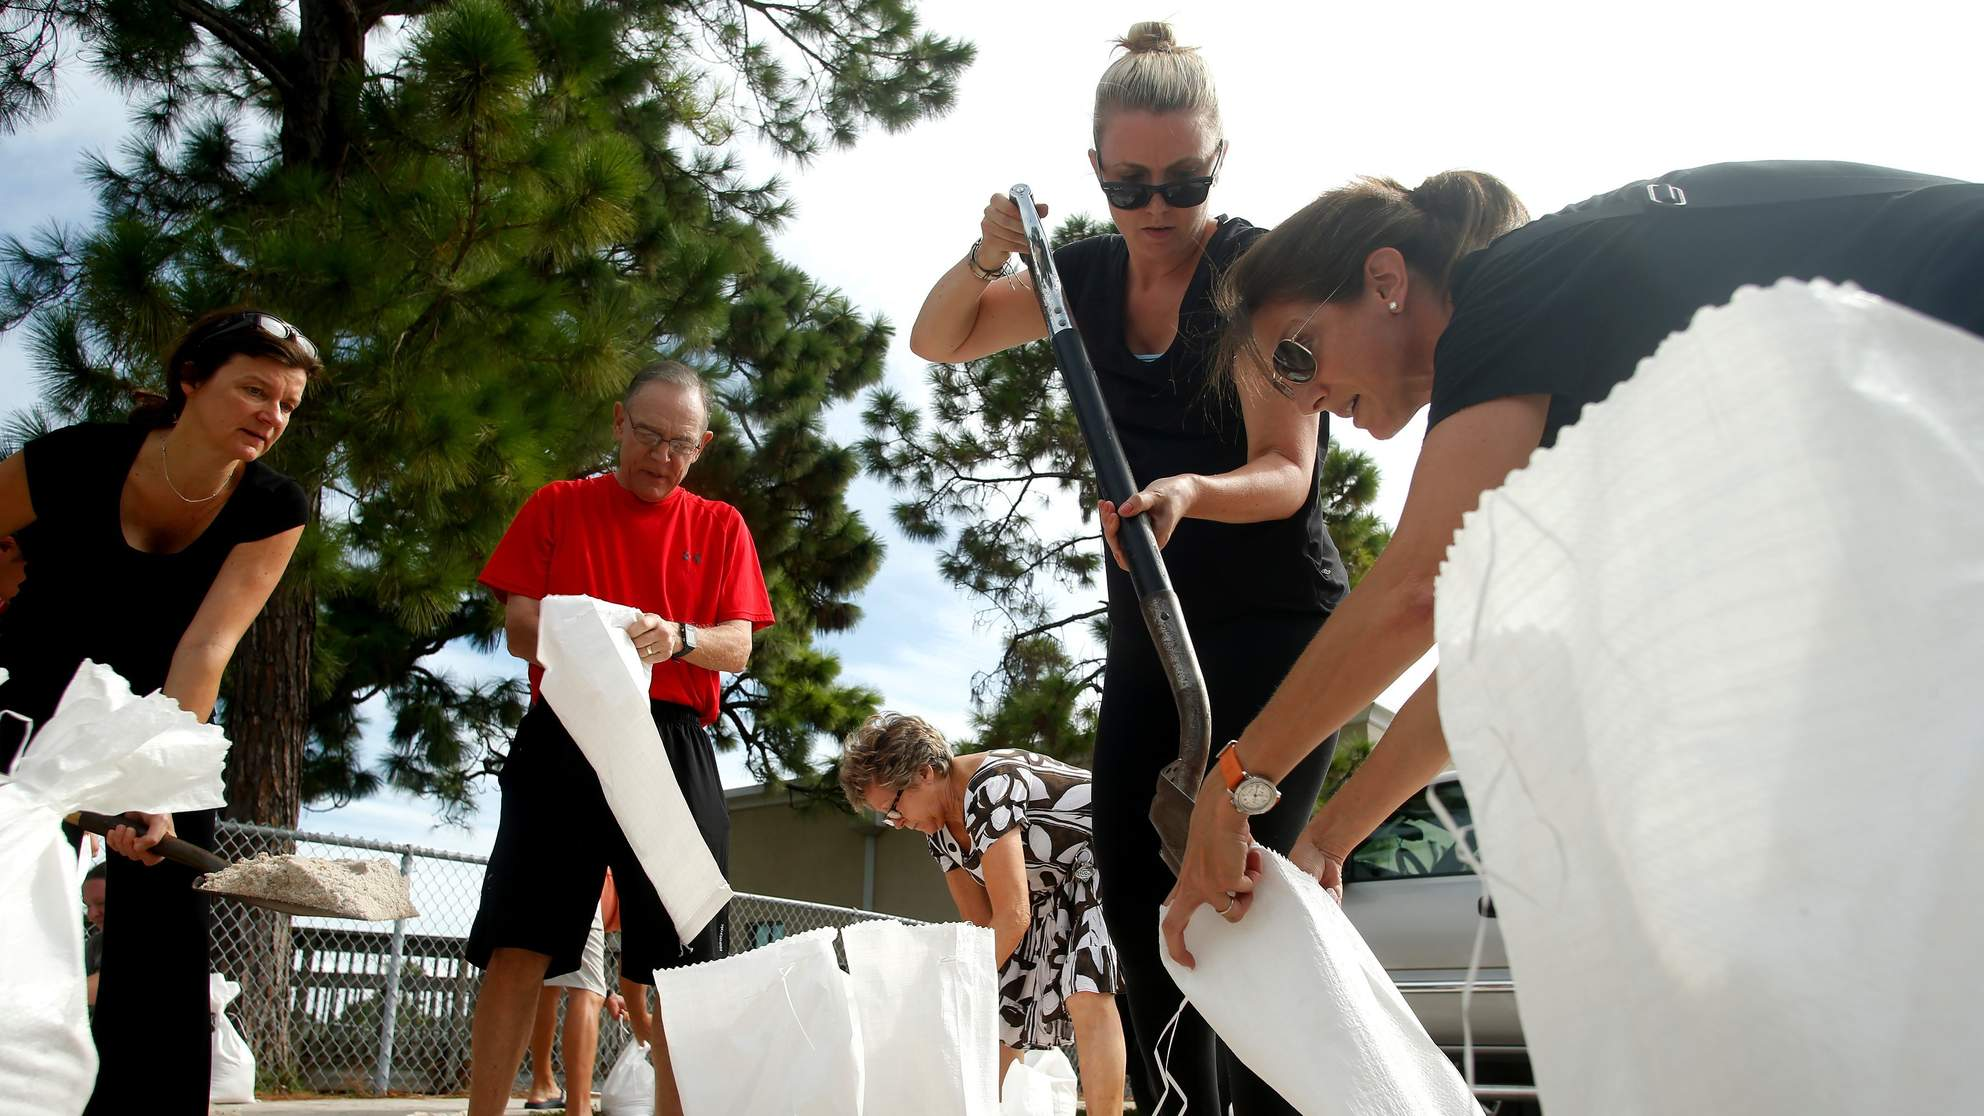 Residents work together to fill sandbags for each other at Bobby Hicks Park as residents prepare ahead of Hurricane Irma on Sept. 5, 2017 in Tampa, Florida.